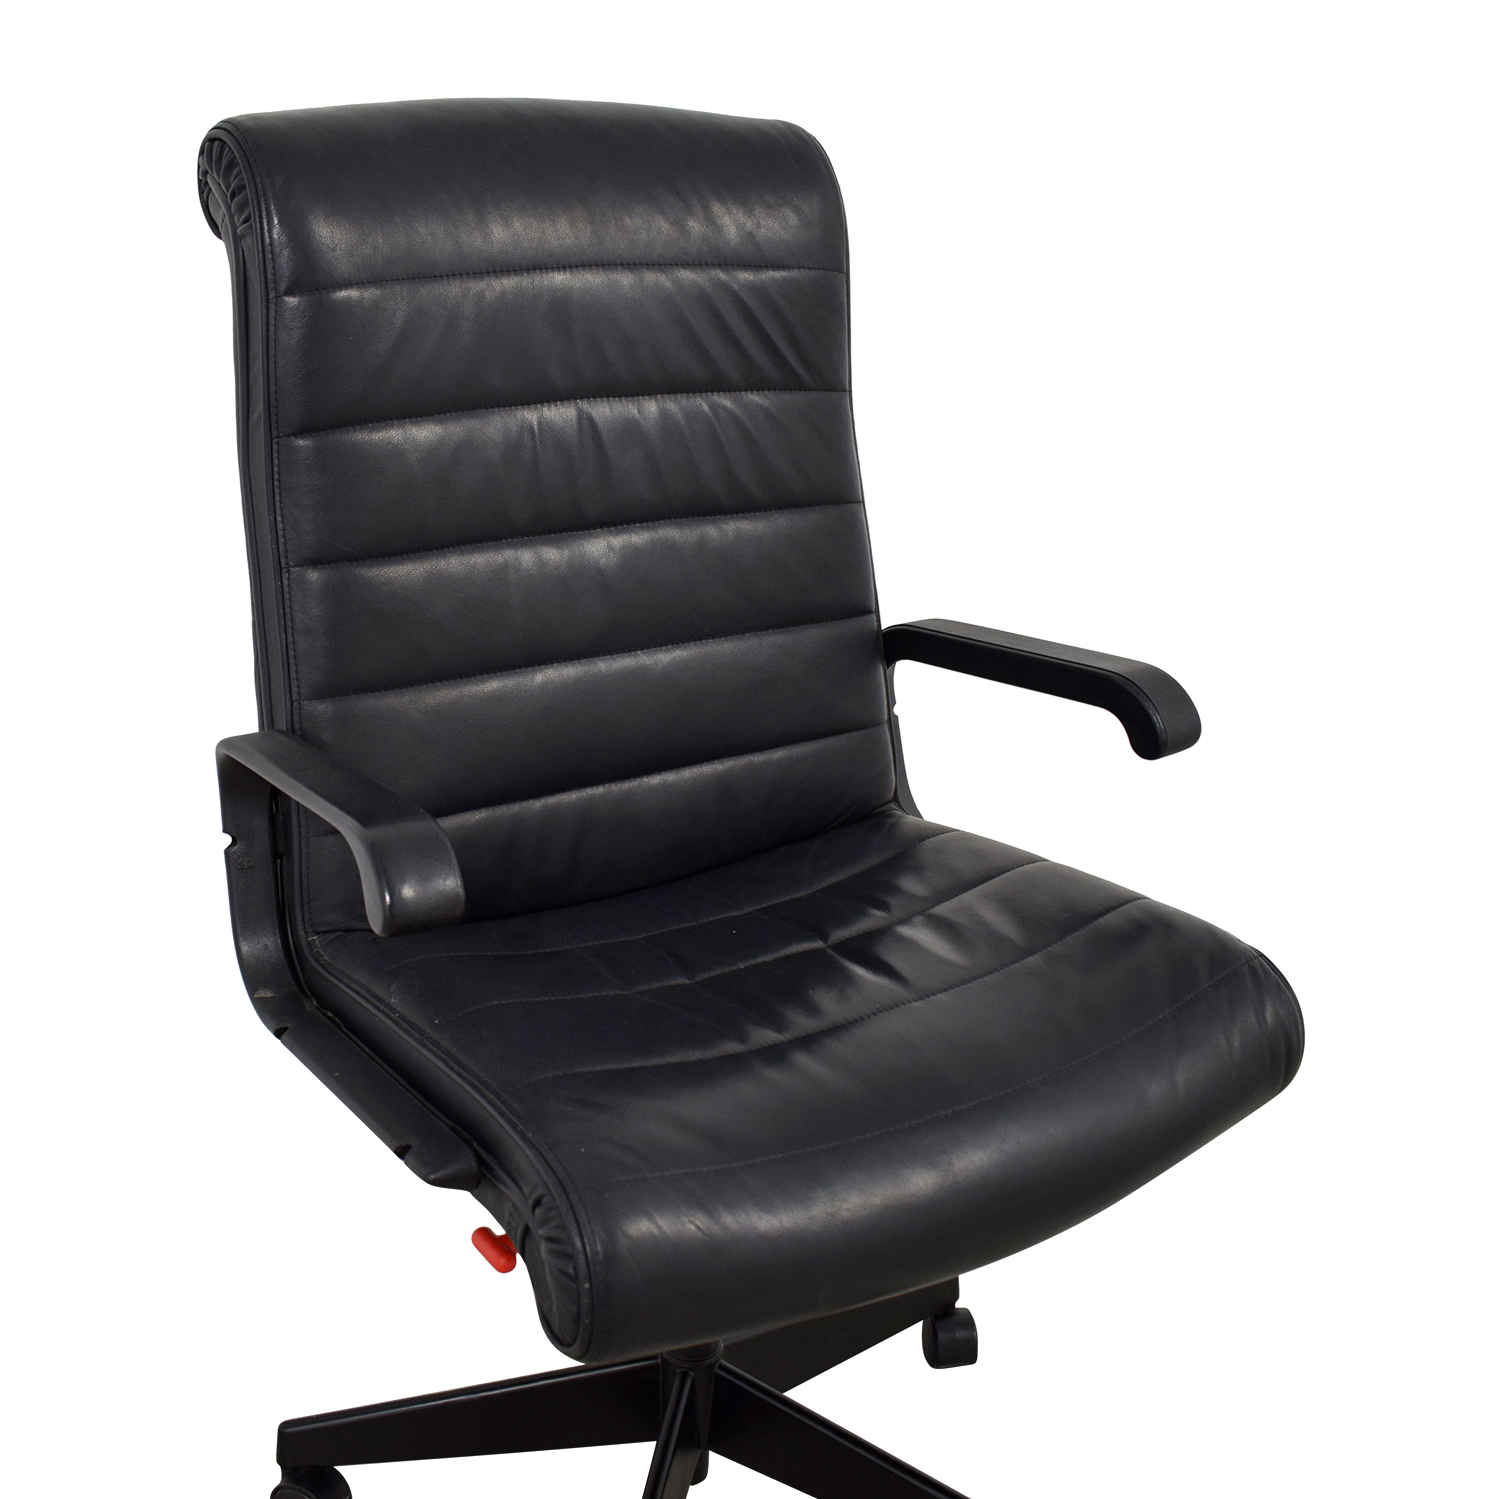 88 off black leather office chair chairs. Black Bedroom Furniture Sets. Home Design Ideas